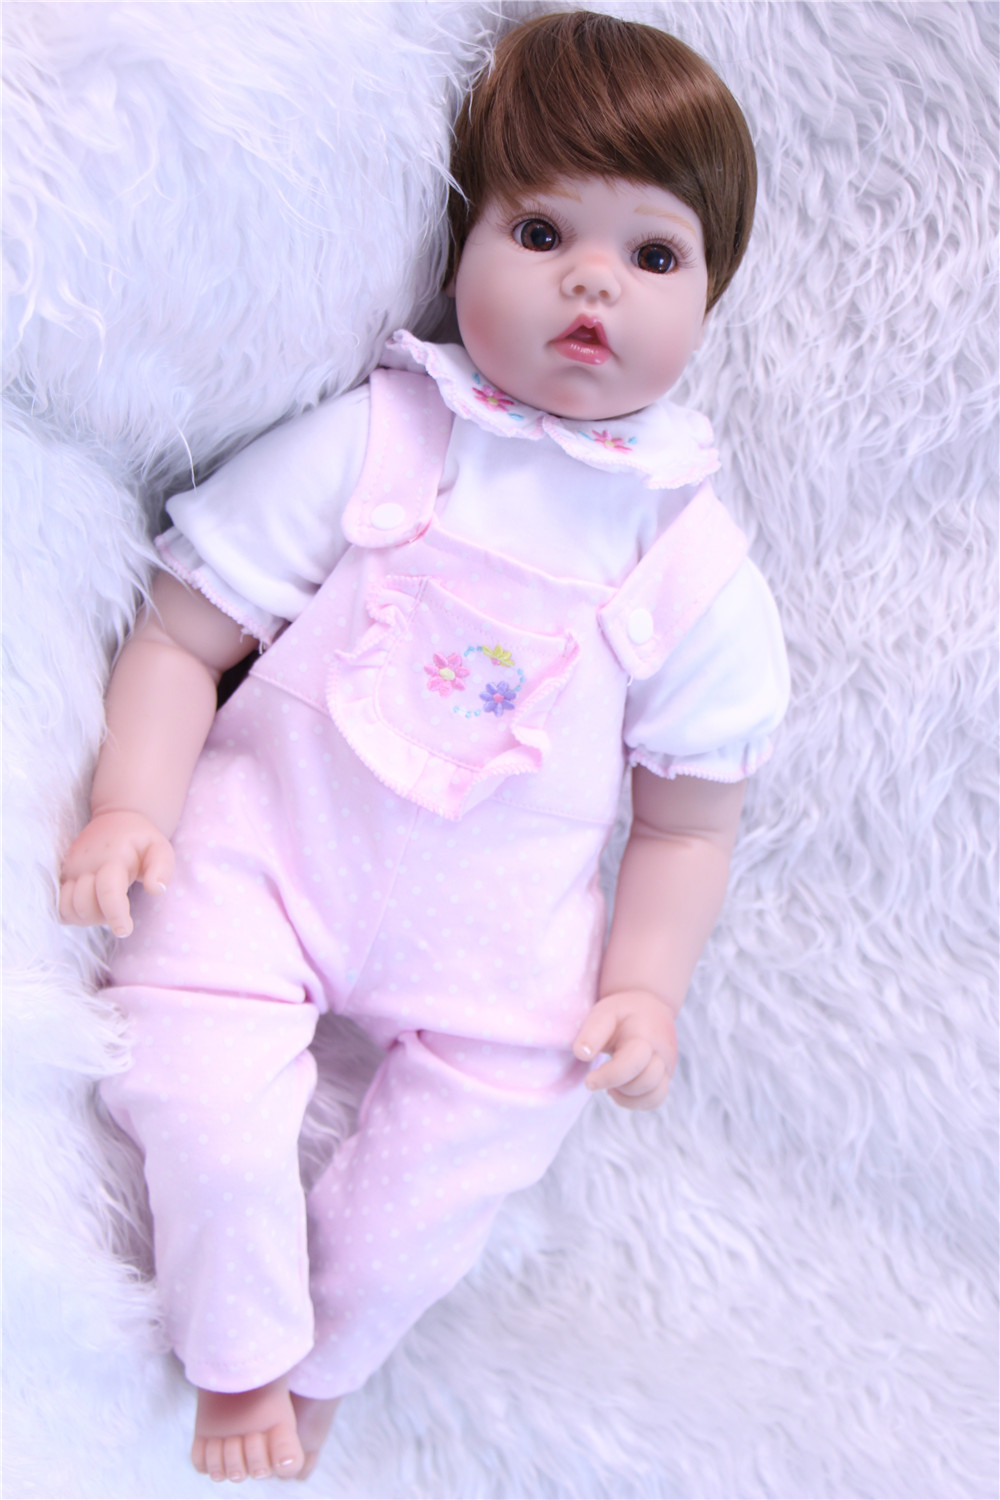 20girl doll reborn soft touch silicone reborn babies brown hair wig children doll gift bebe alive reborn bonecas20girl doll reborn soft touch silicone reborn babies brown hair wig children doll gift bebe alive reborn bonecas